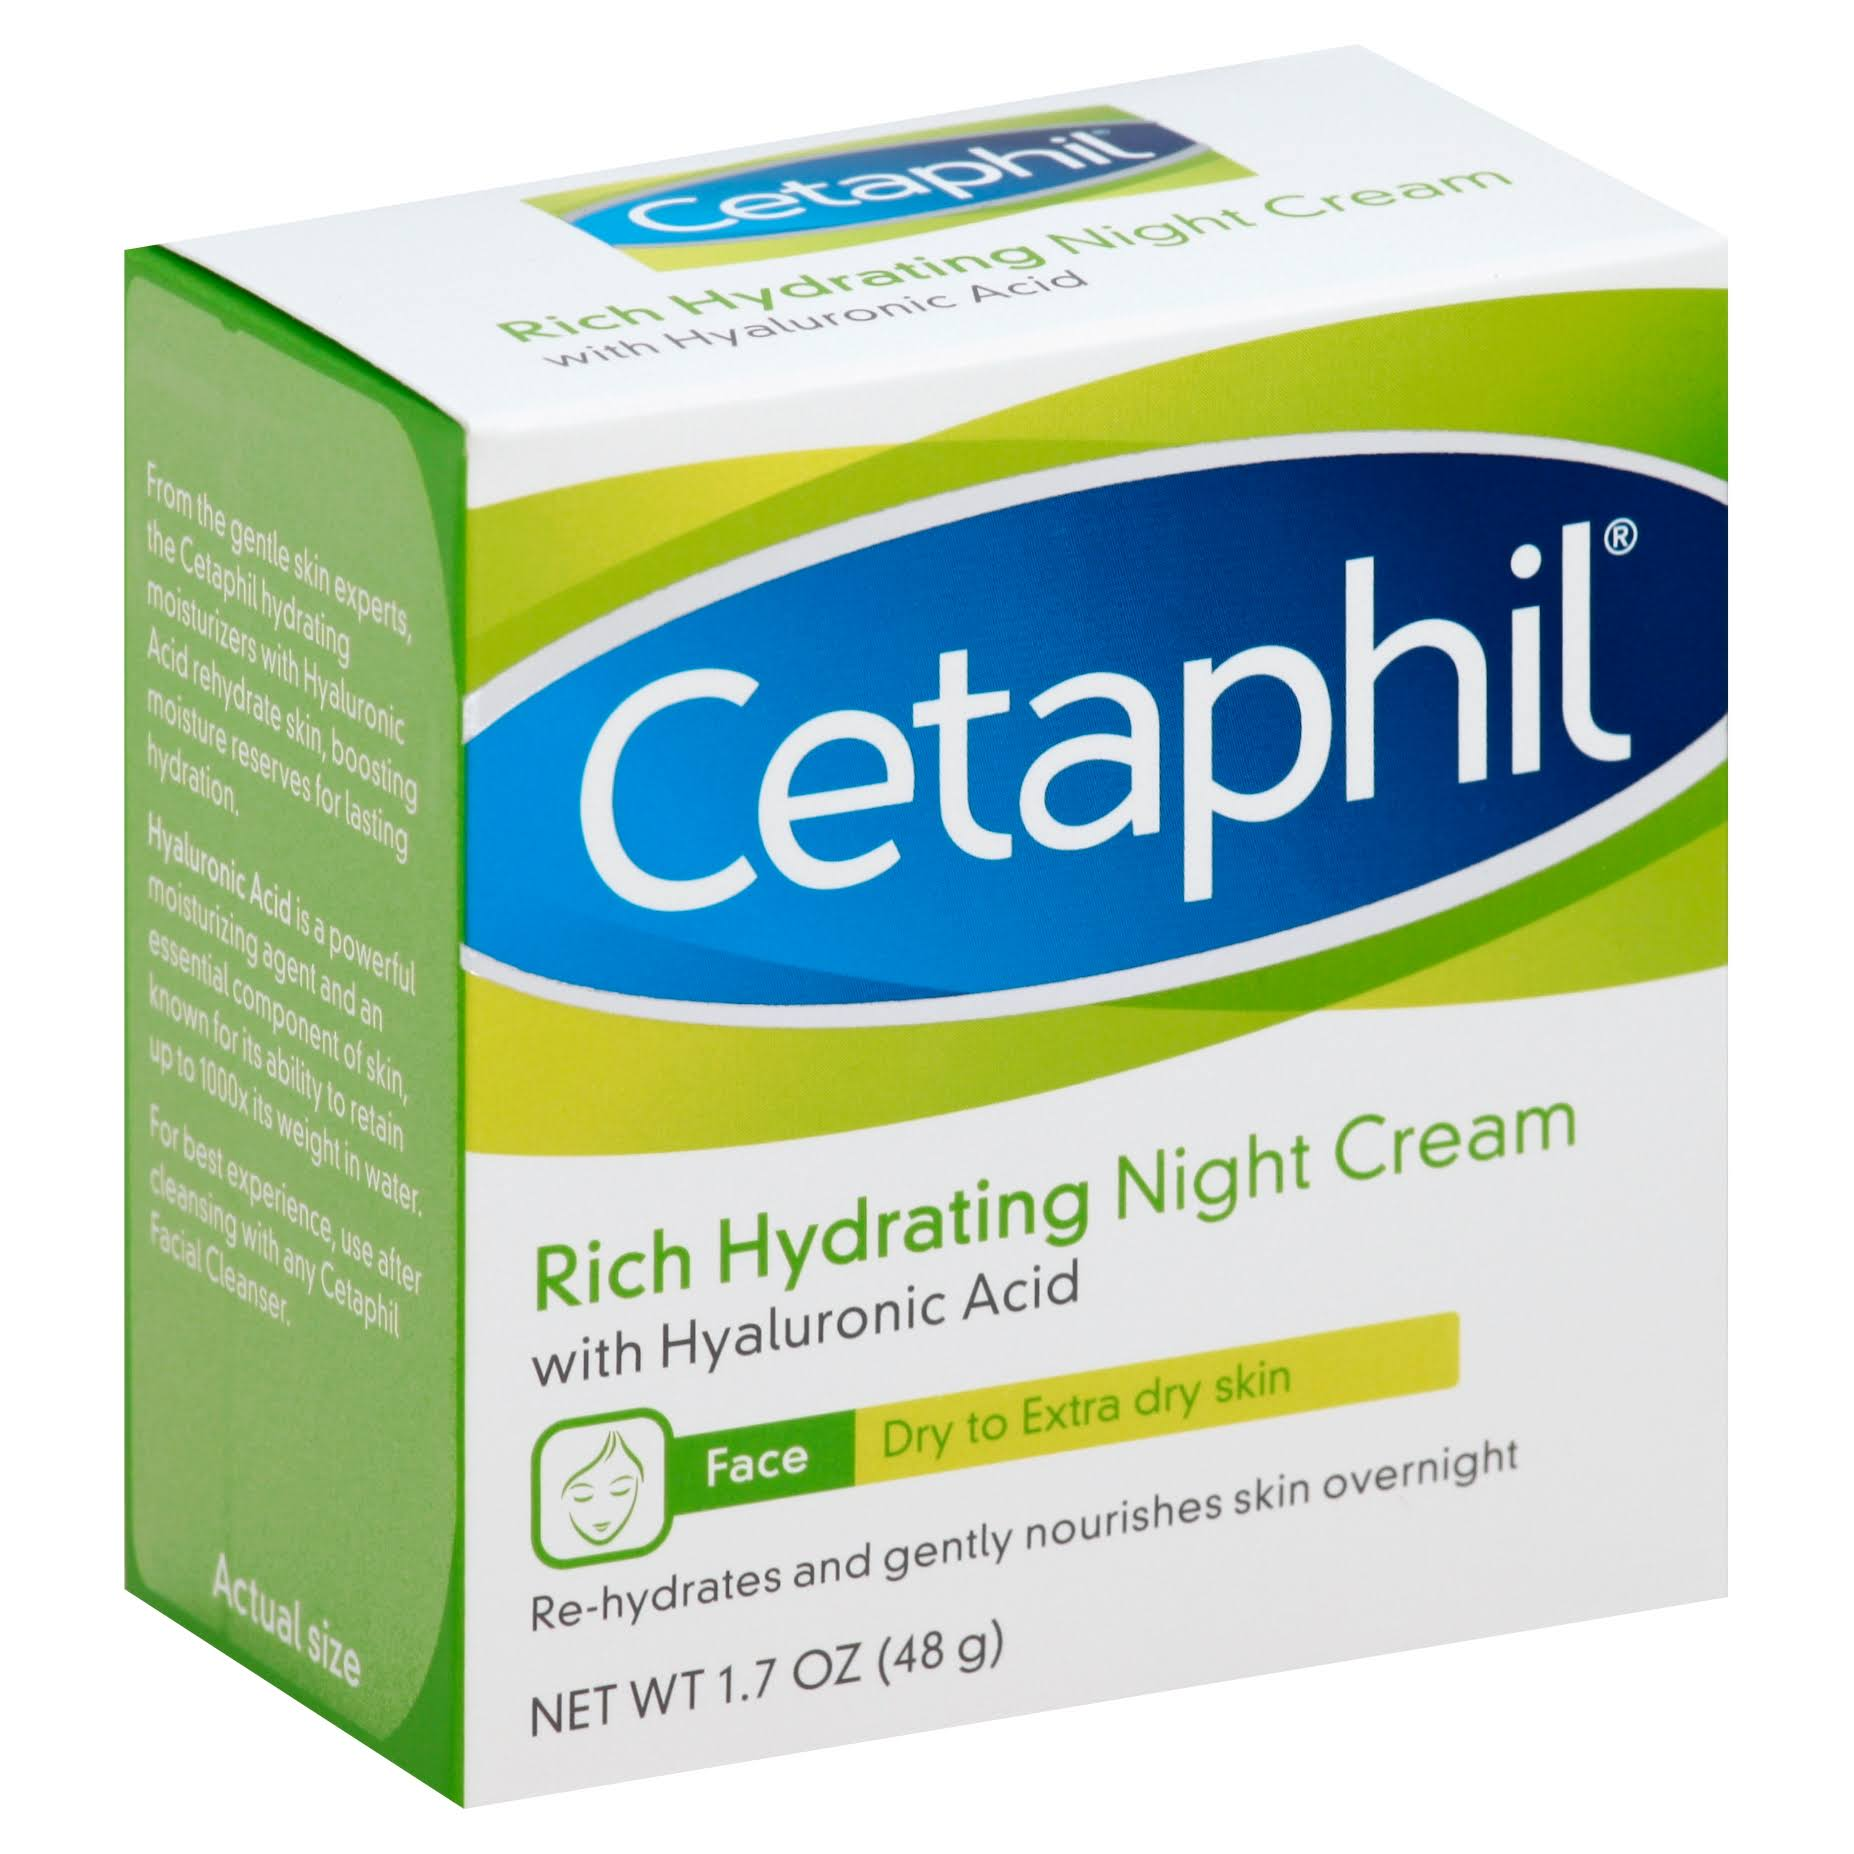 Cetaphil Rich Hydrating Night Cream - 1.7 Oz